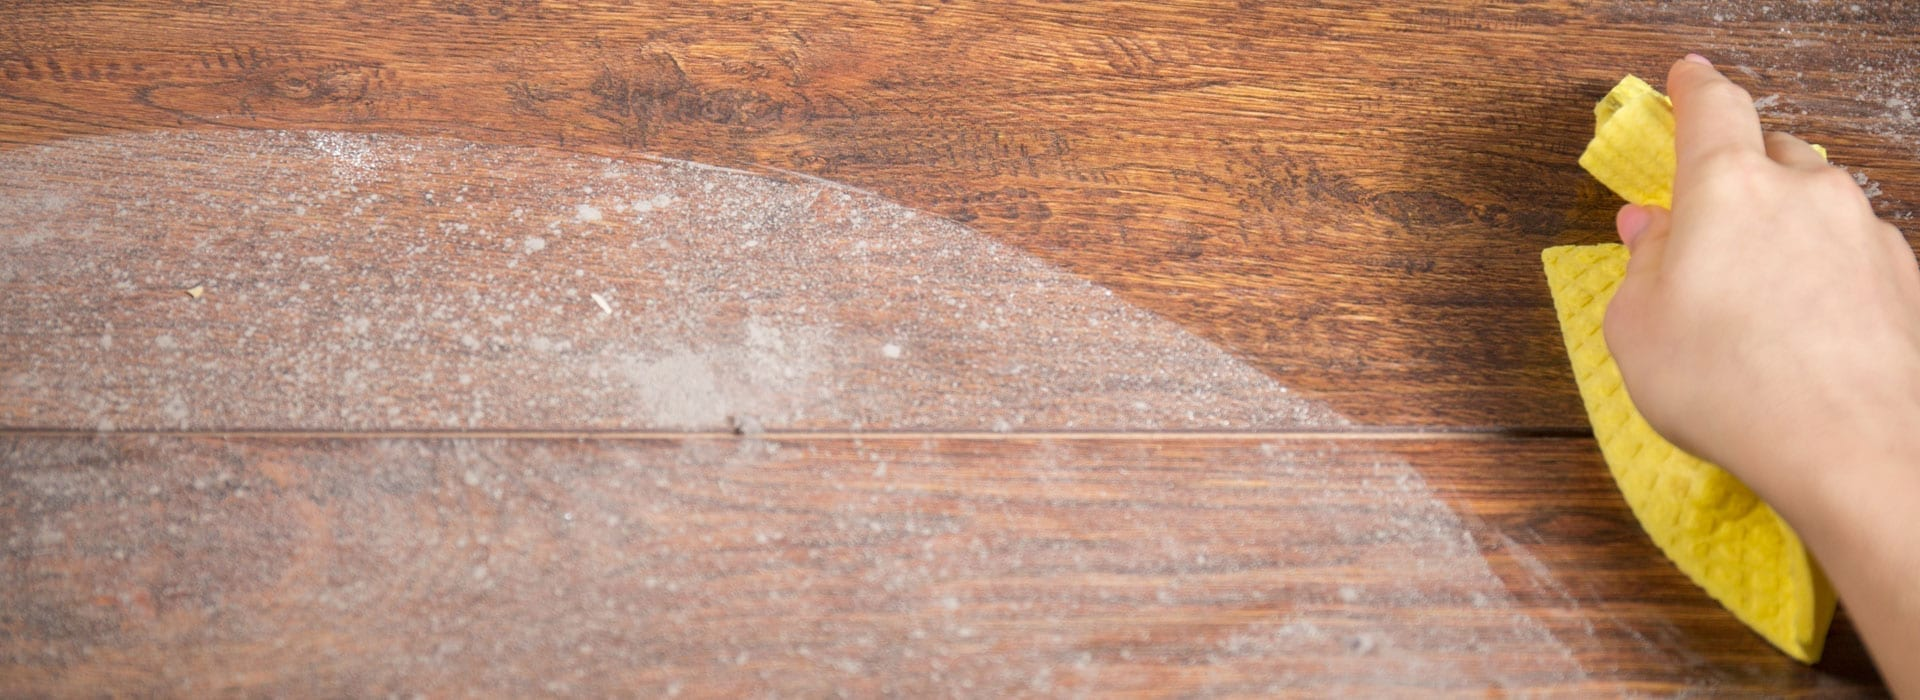 Removing Salt Residue from Your Floors